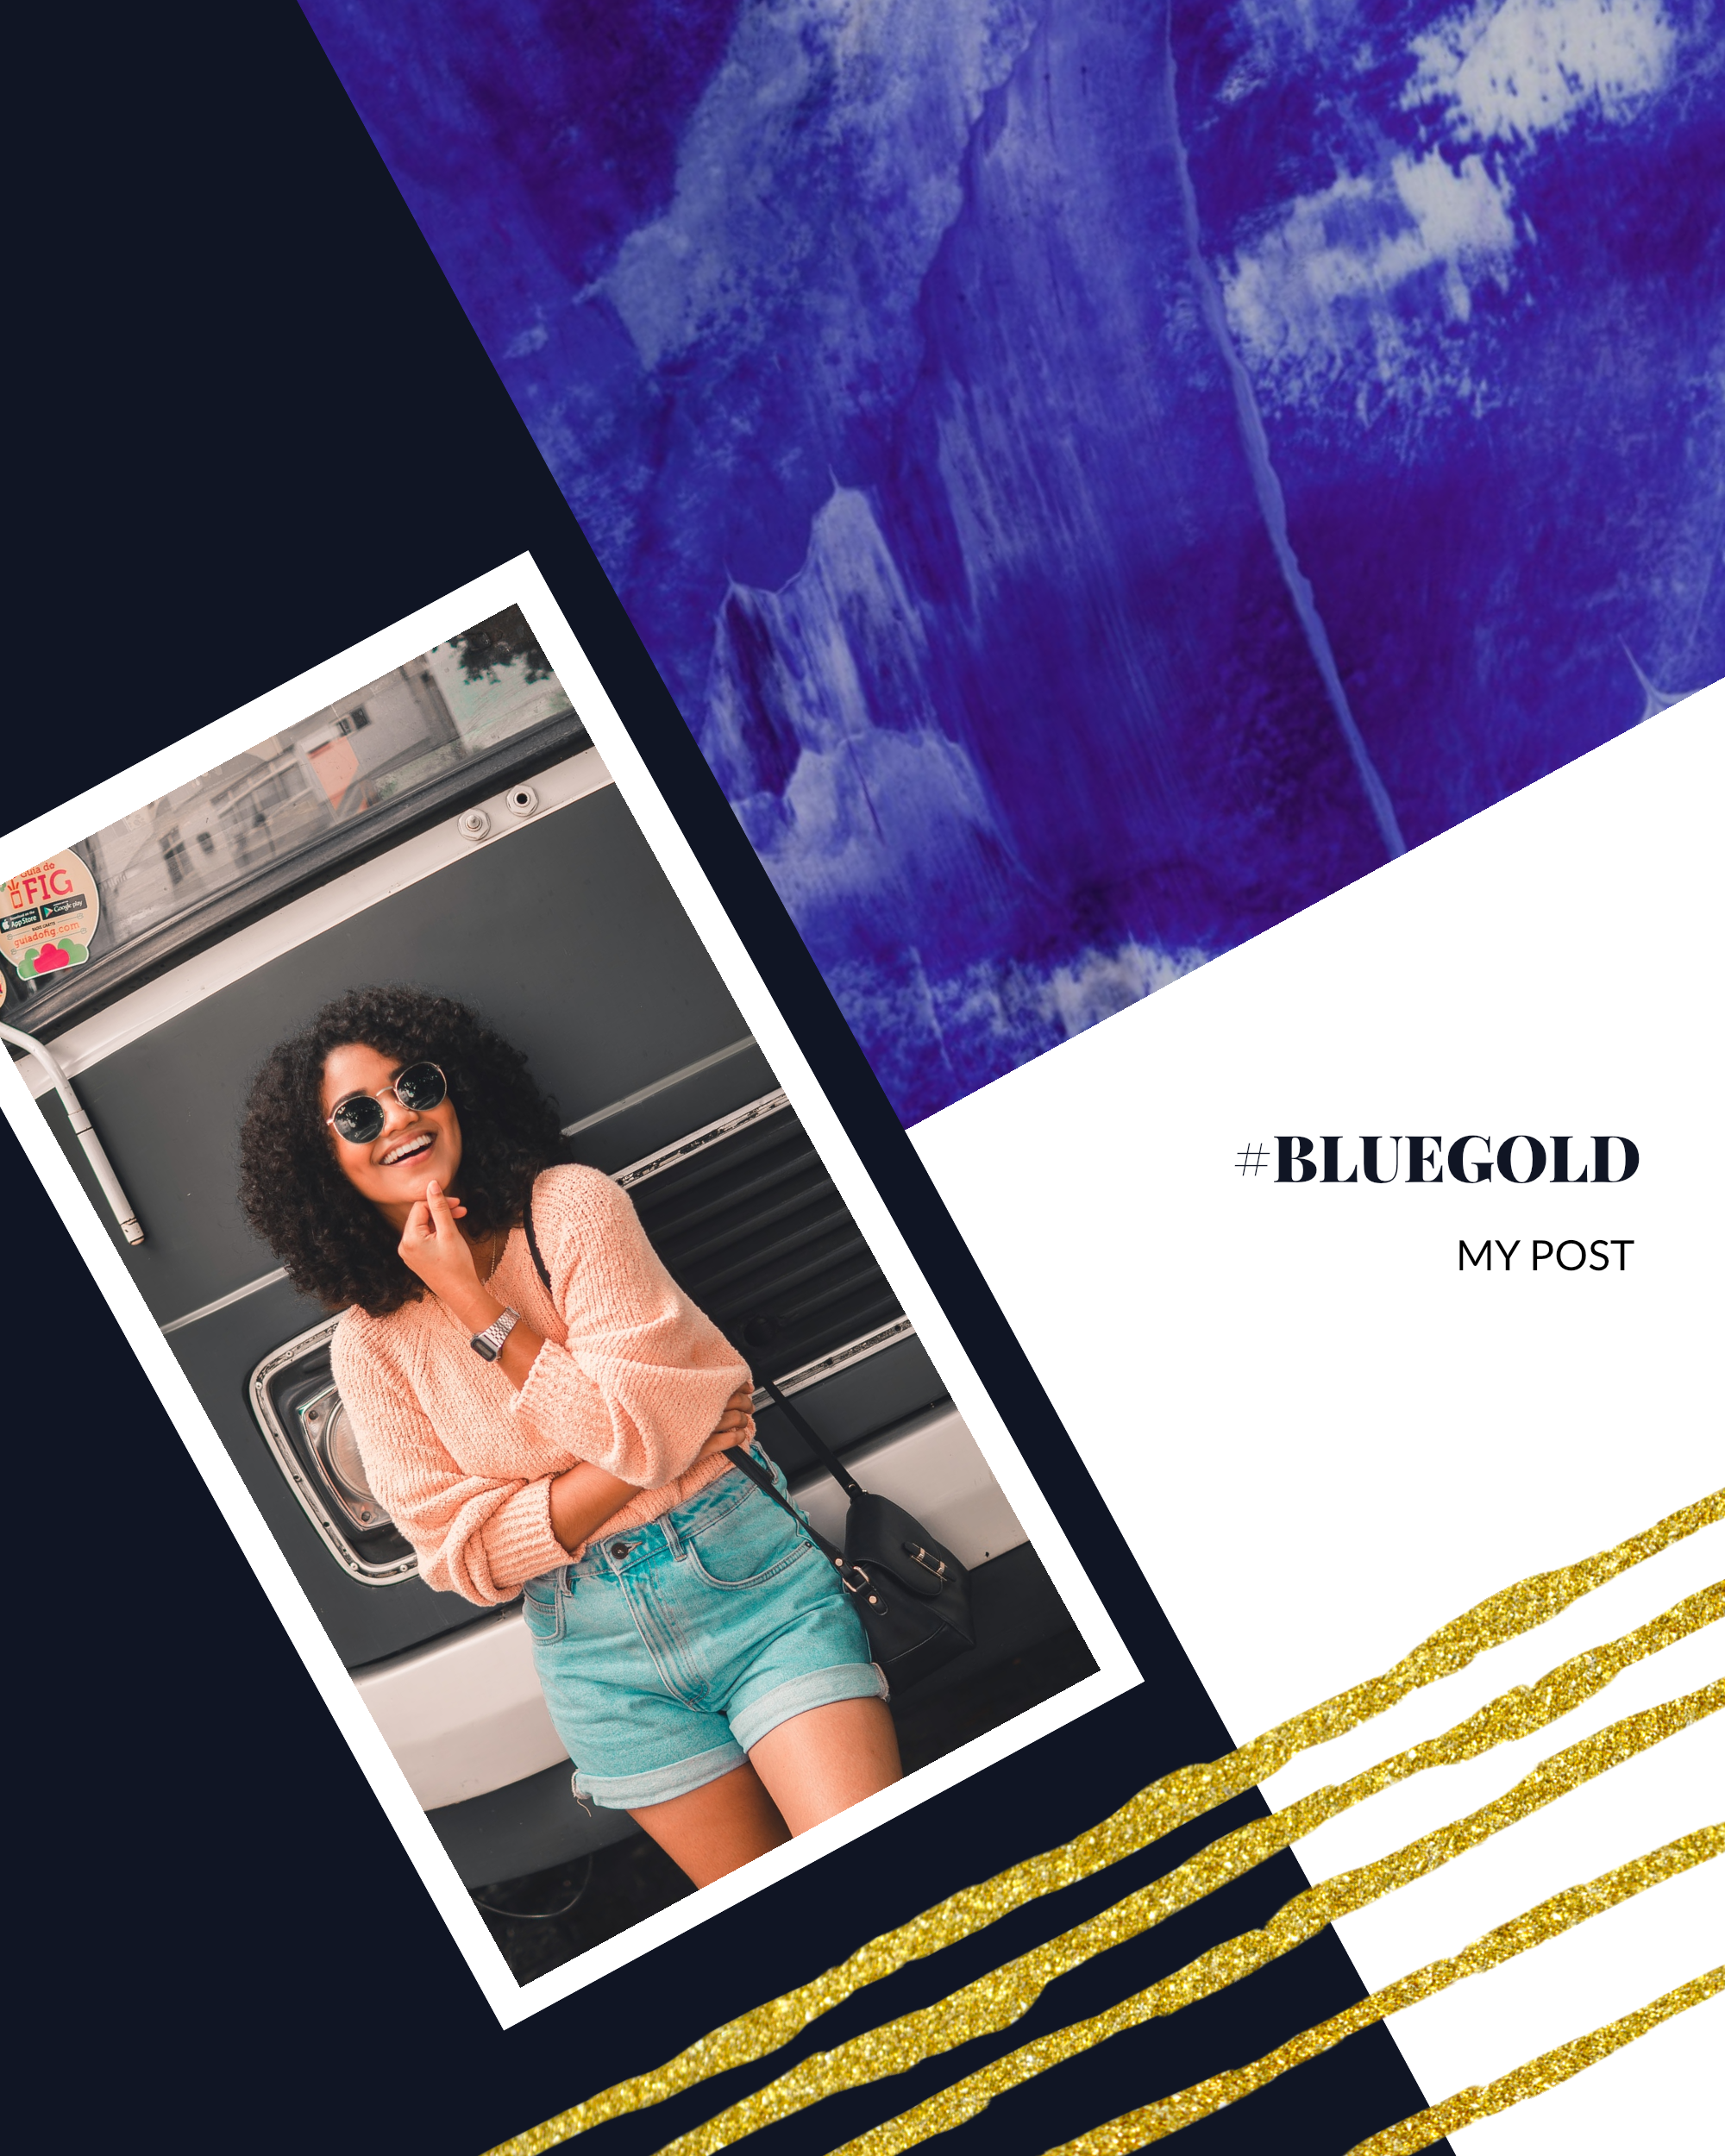 #bluegold Post collection - #BLUEGOLD MY POST Instagram Post Template